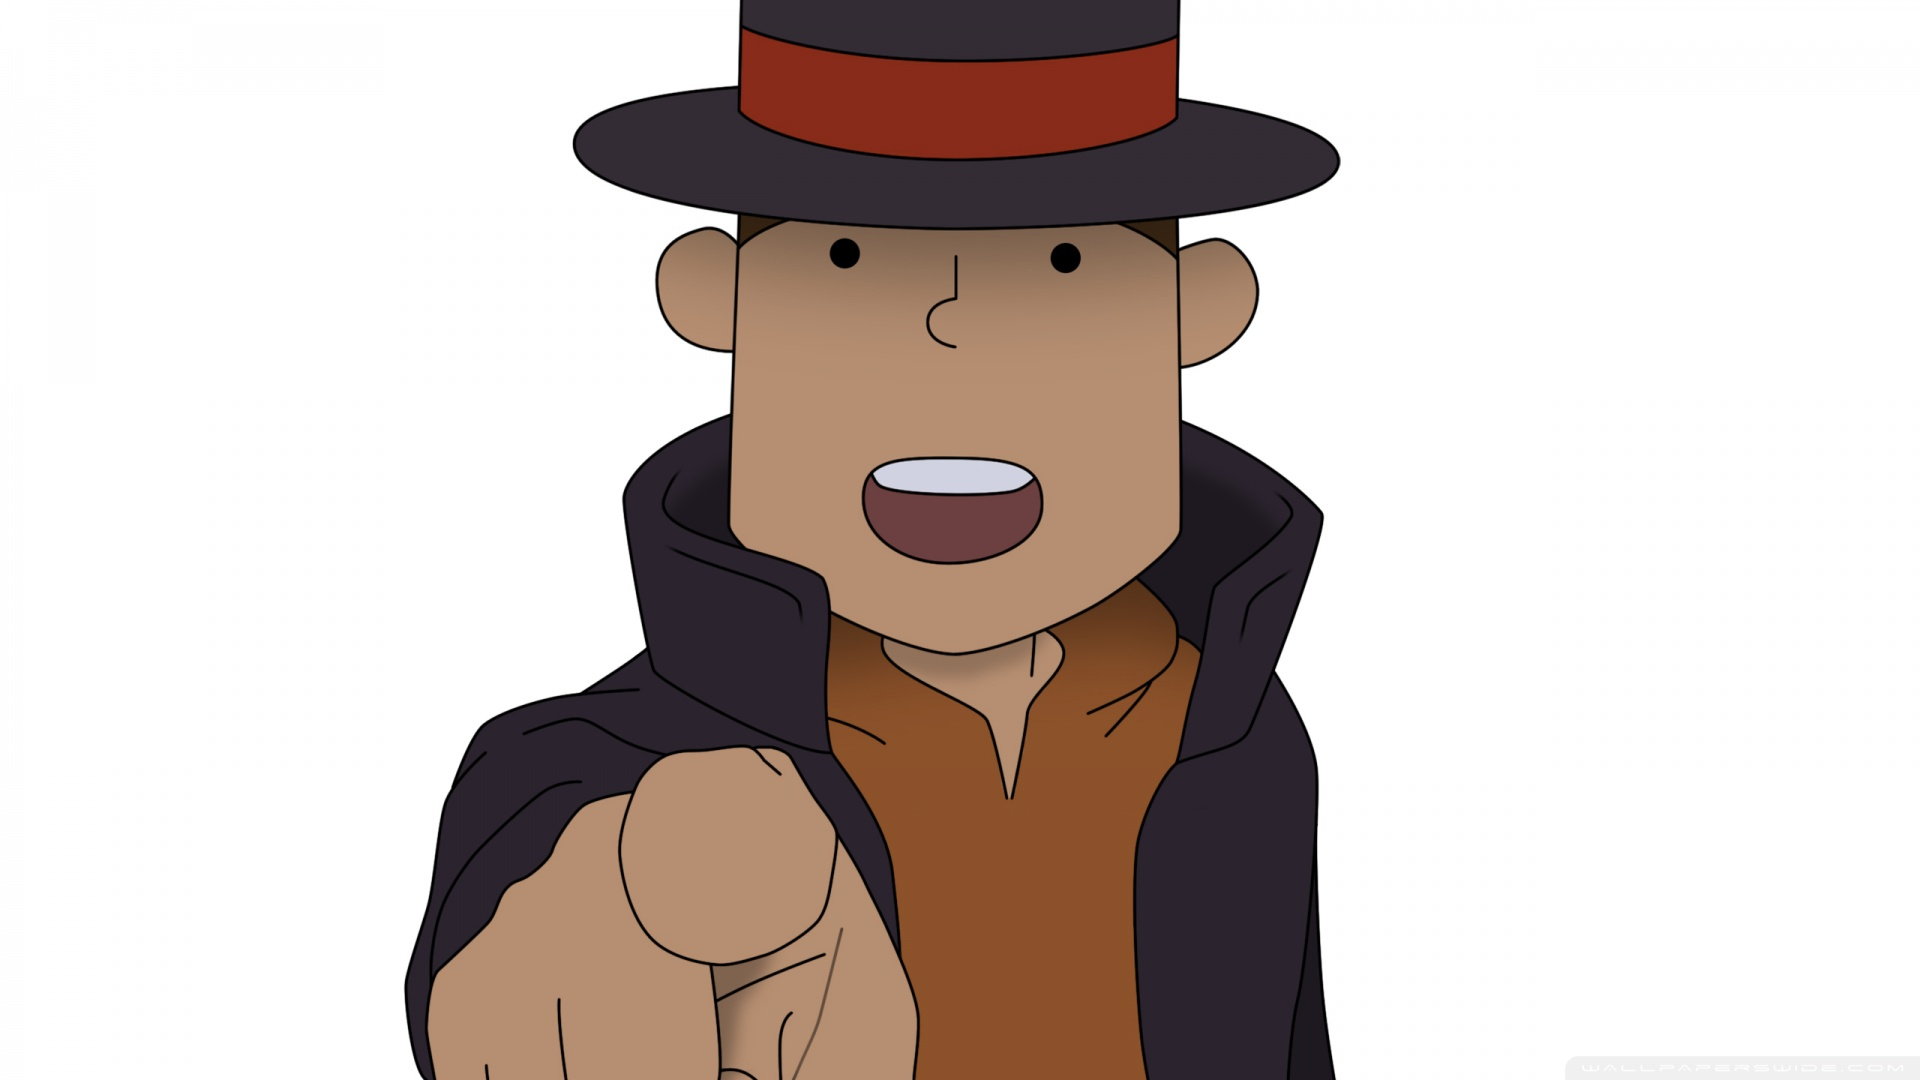 Professor Layton And The Unwound Future Hd Wallpaper Background